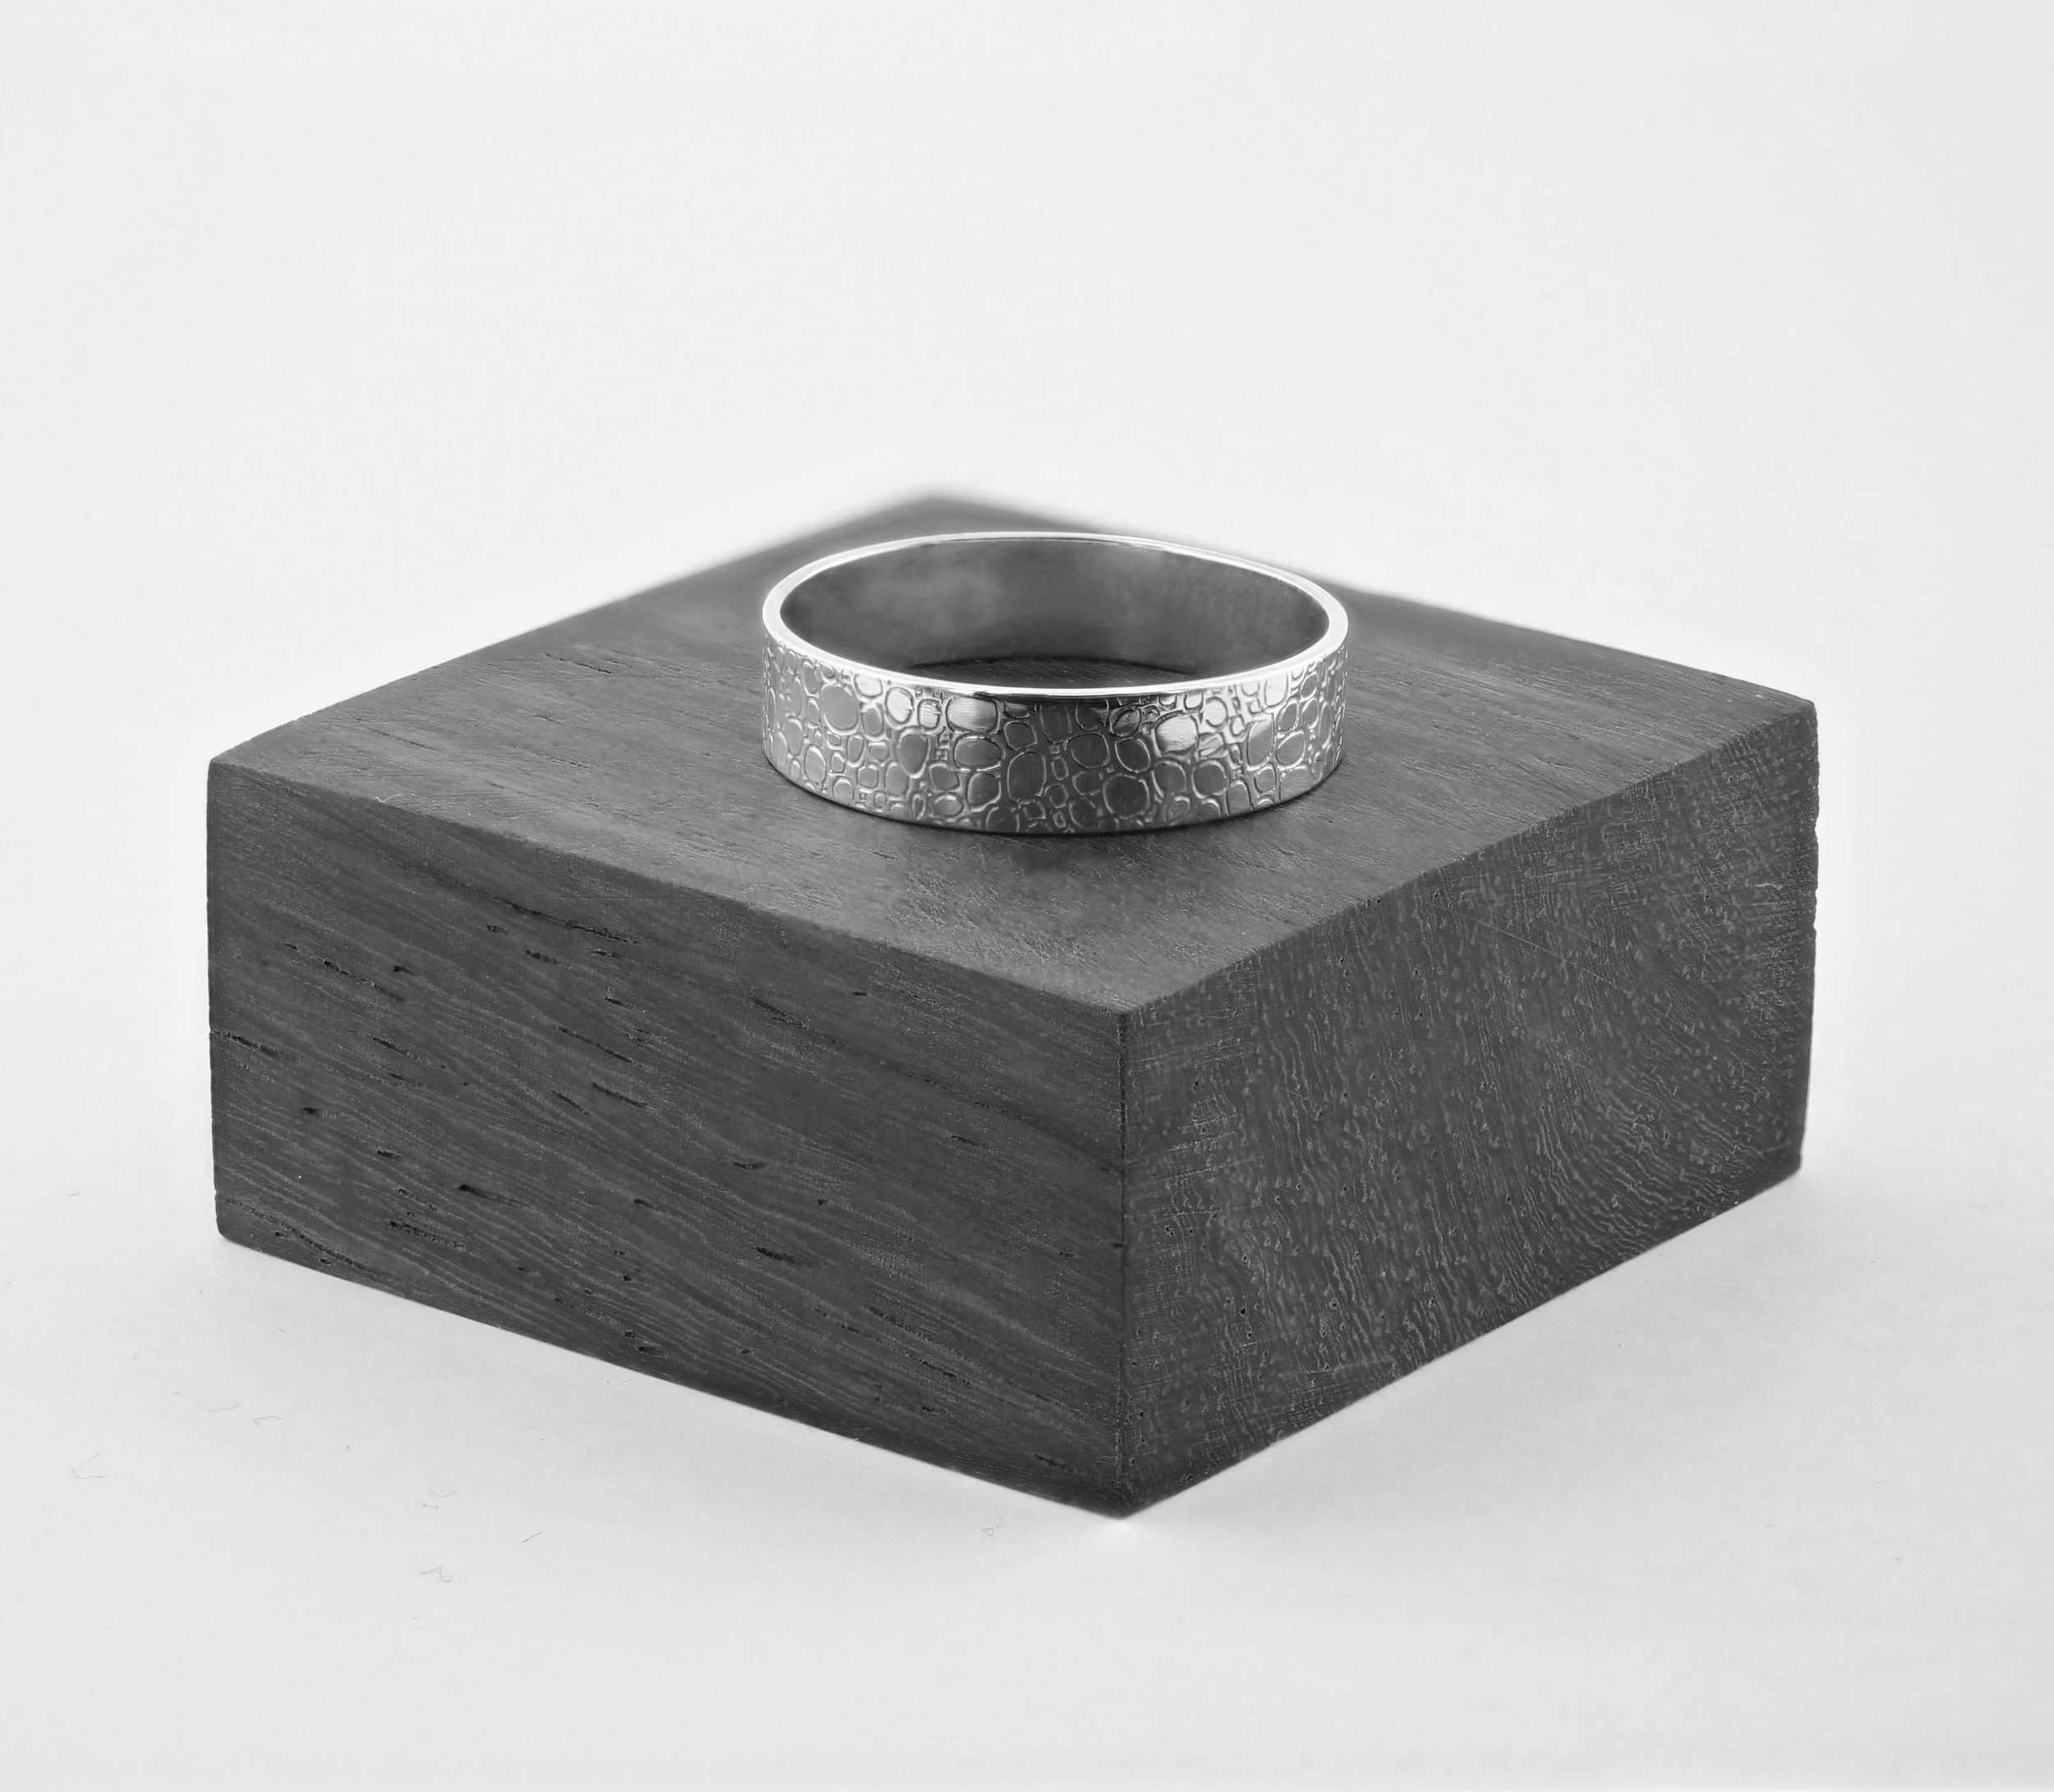 This is a ring that I designed at the same time as this collection based on a general cell pattern found in organic life.